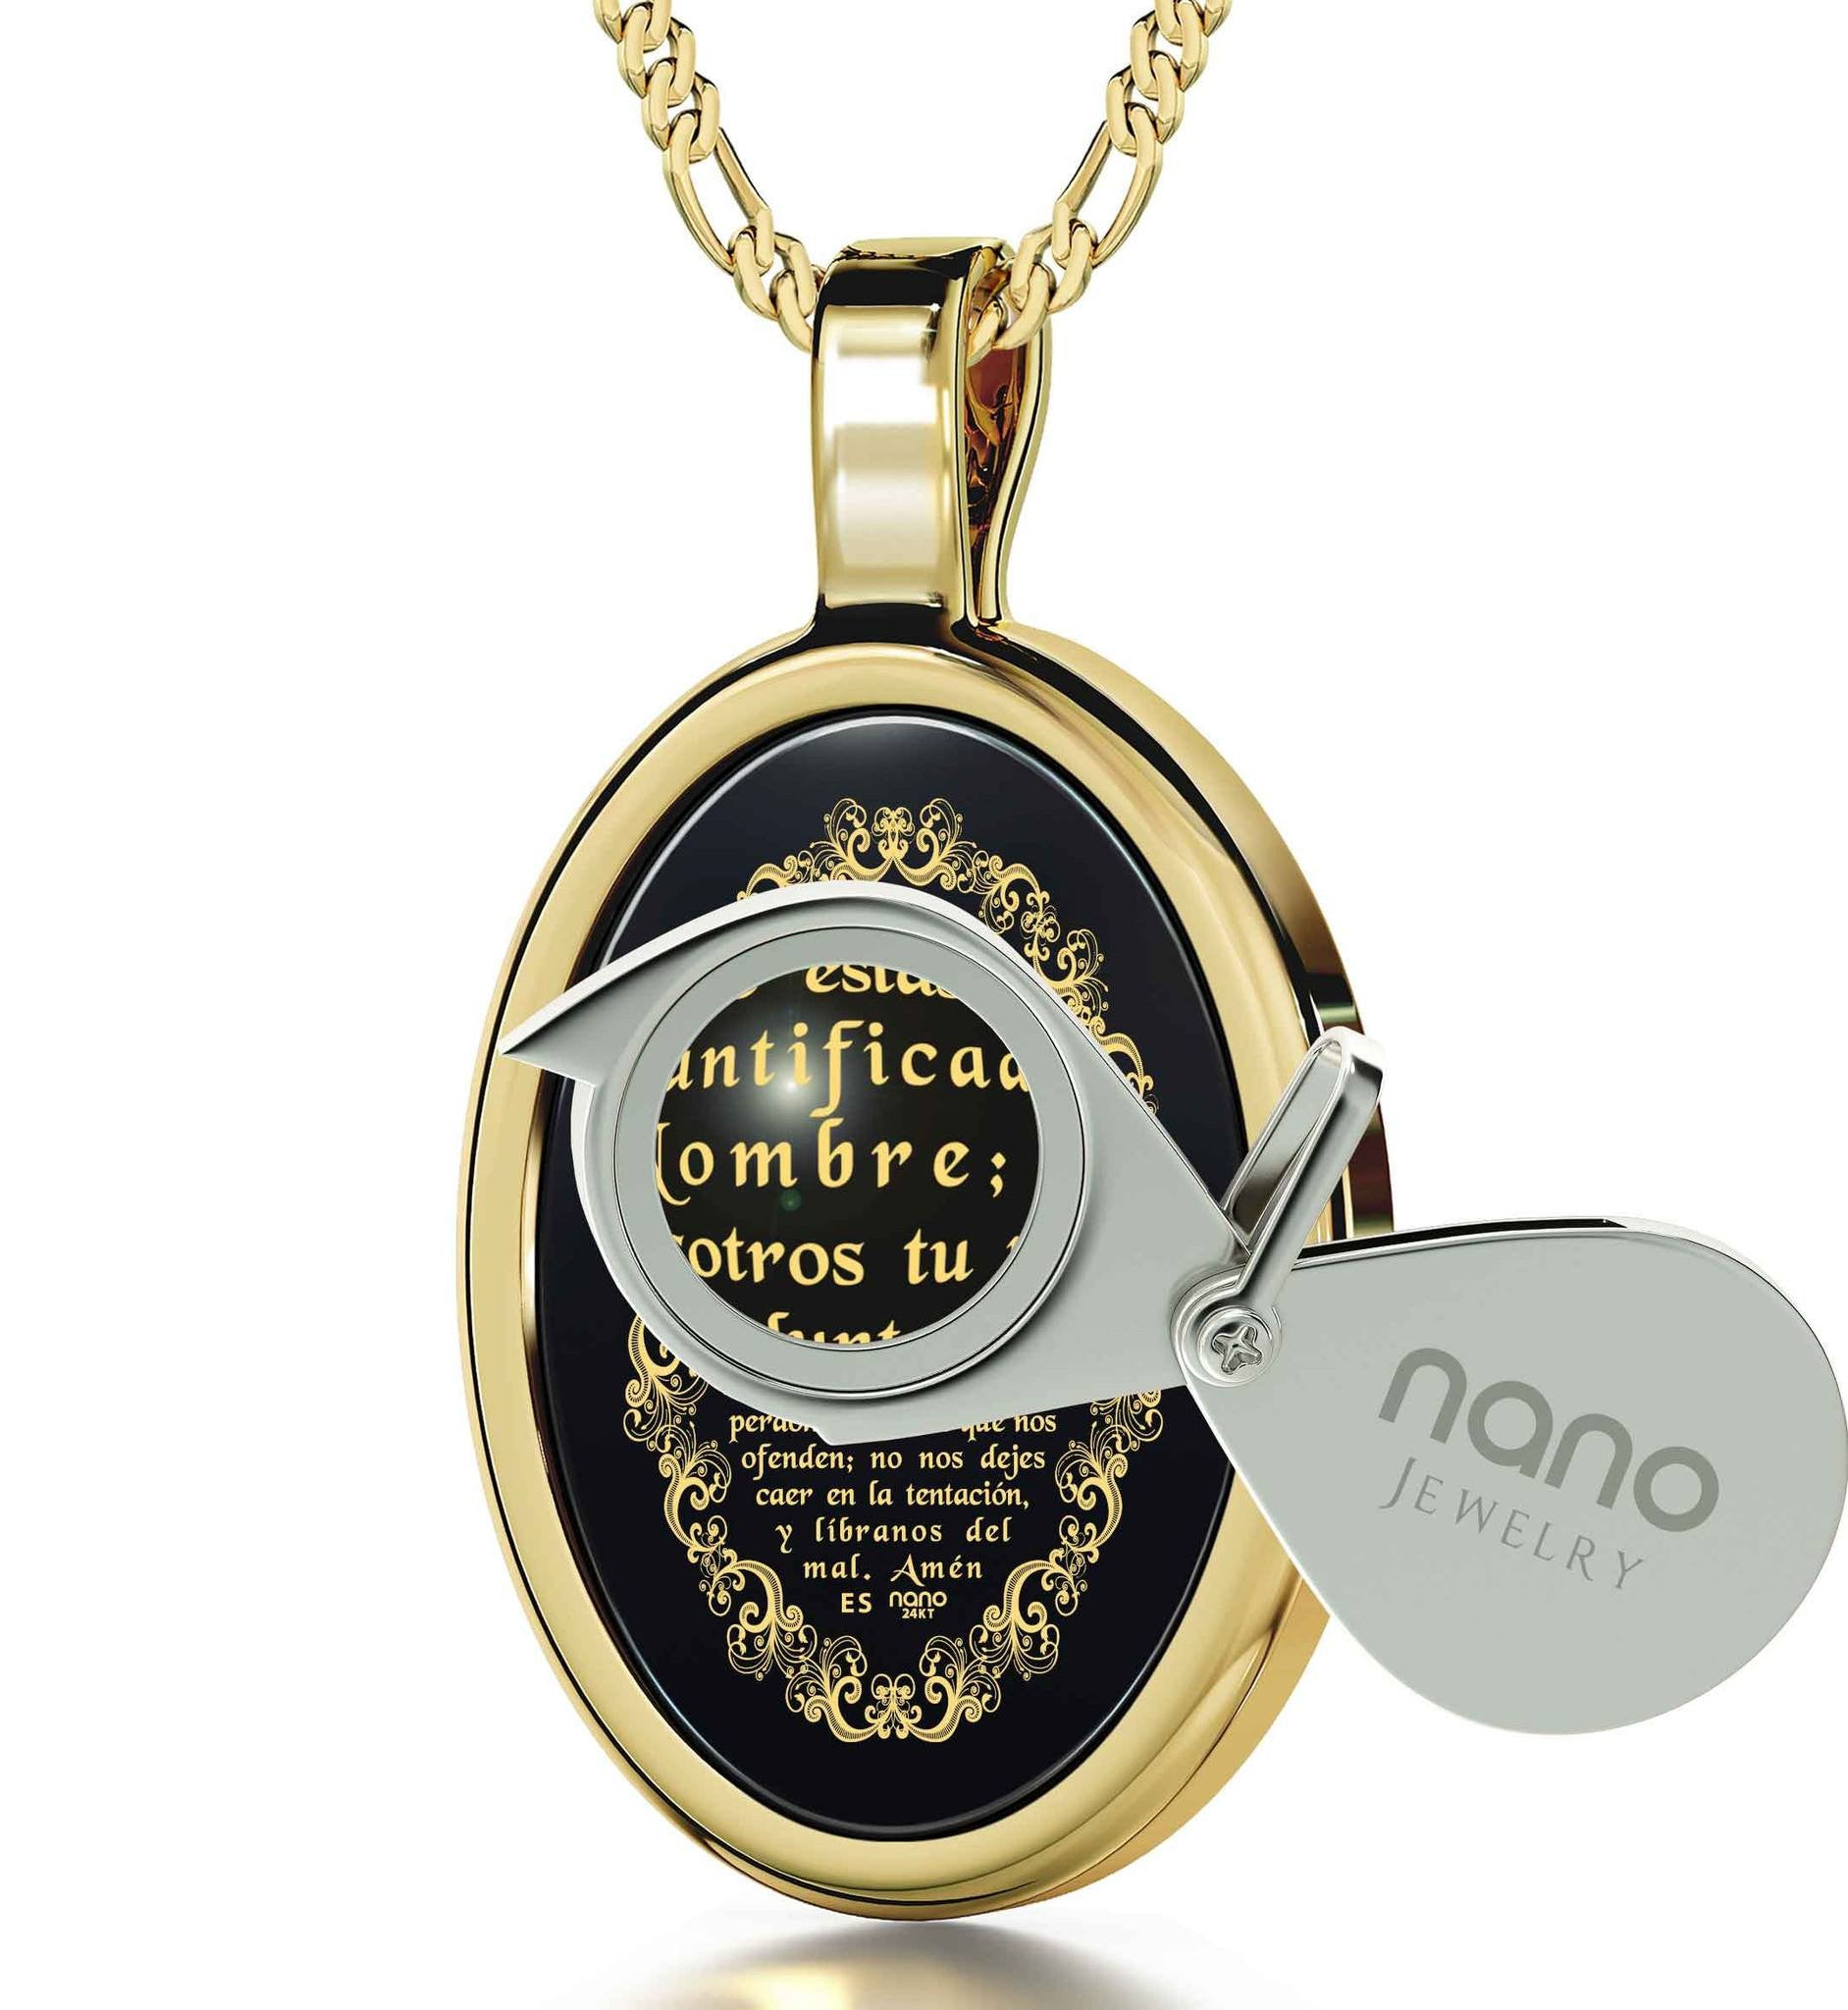 """The Lord's Prayer:14k Gold Religious Pendants,Top Womens Gifts,Christmas Presents for Sister, Nano Jewelry"""